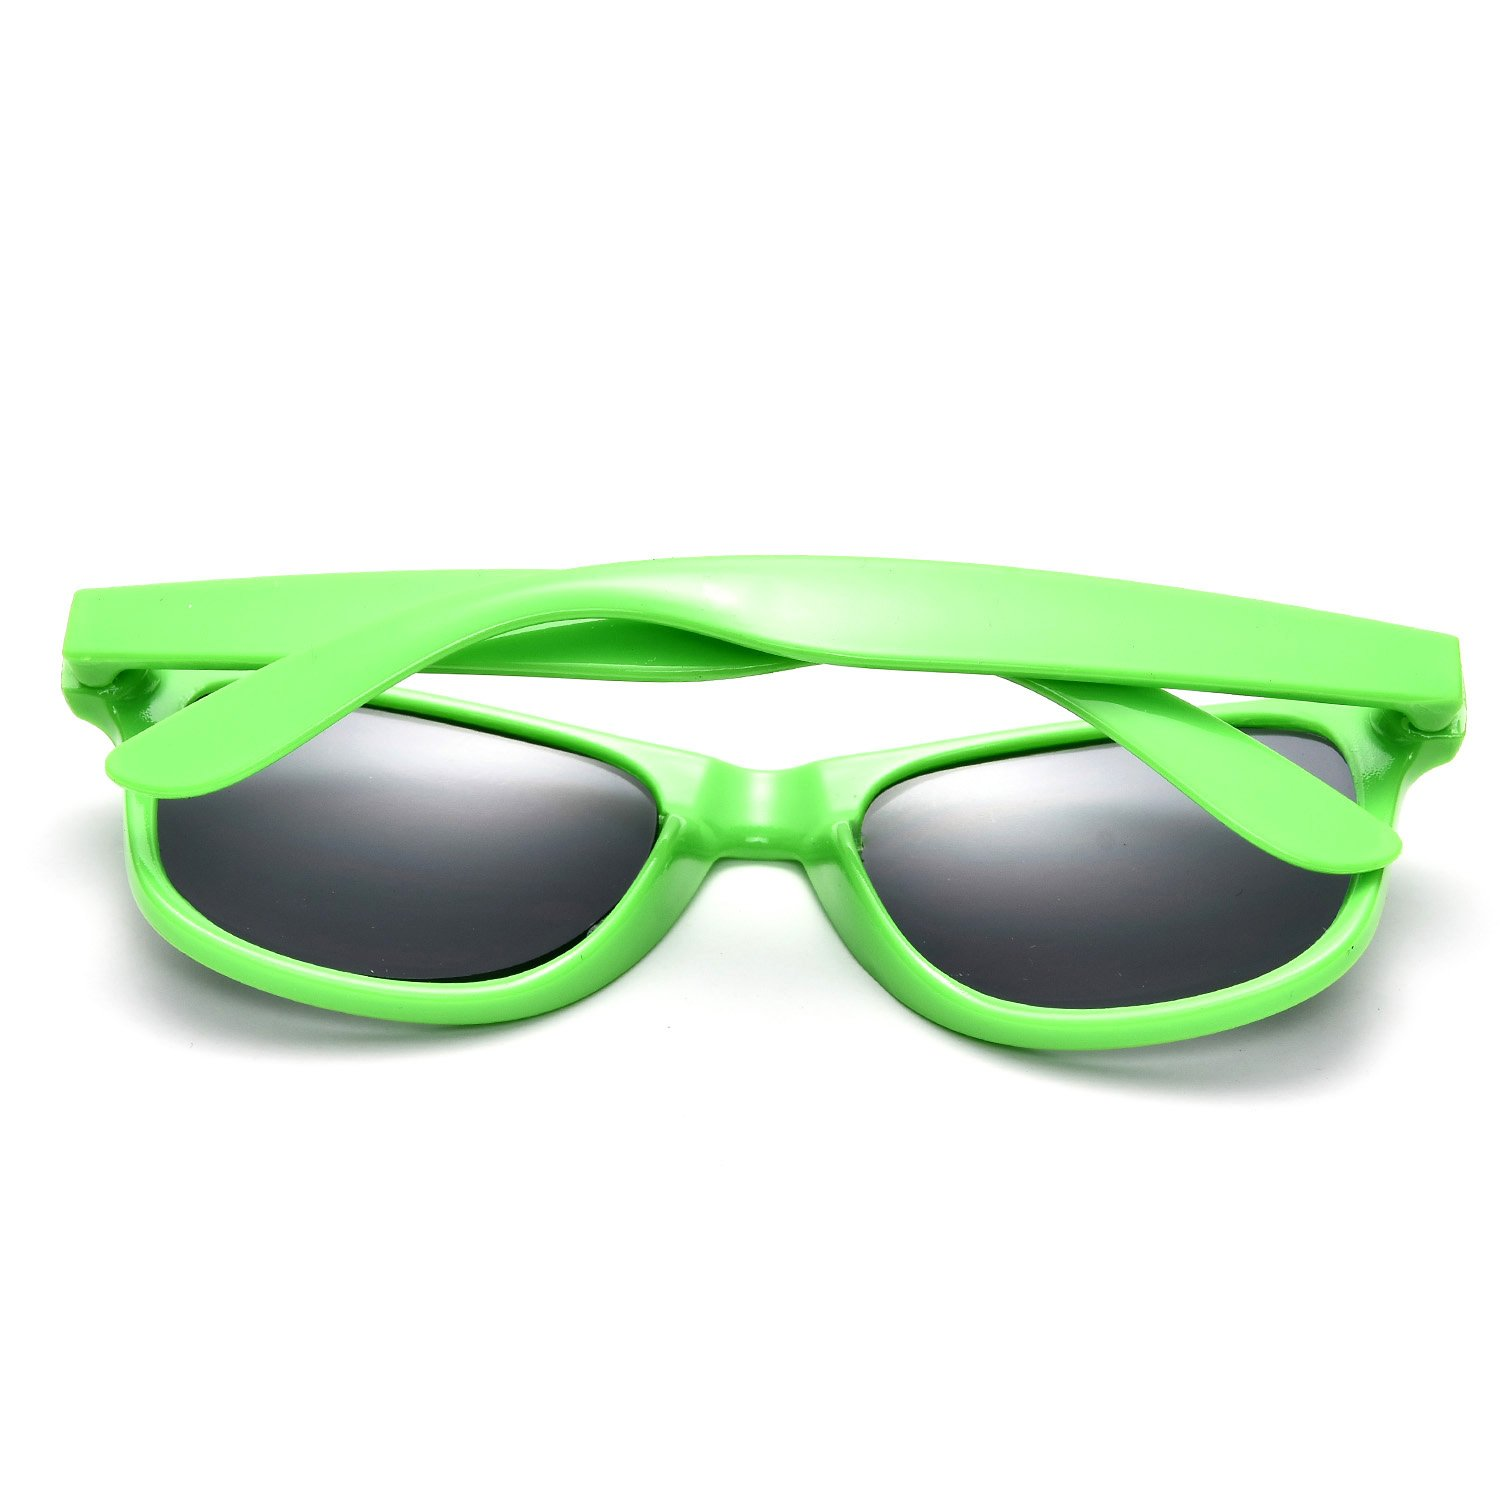 12 Packs Wholesales 80's Retro Style Neon Party Sunglasses 400 UV Protection for Party Favors,Photo Booth Prop,Goody Bag Favors,End of Year Giveaway,Birthdays Gifts for Mam & Women (12 Multicolor) by Sunovelty (Image #4)